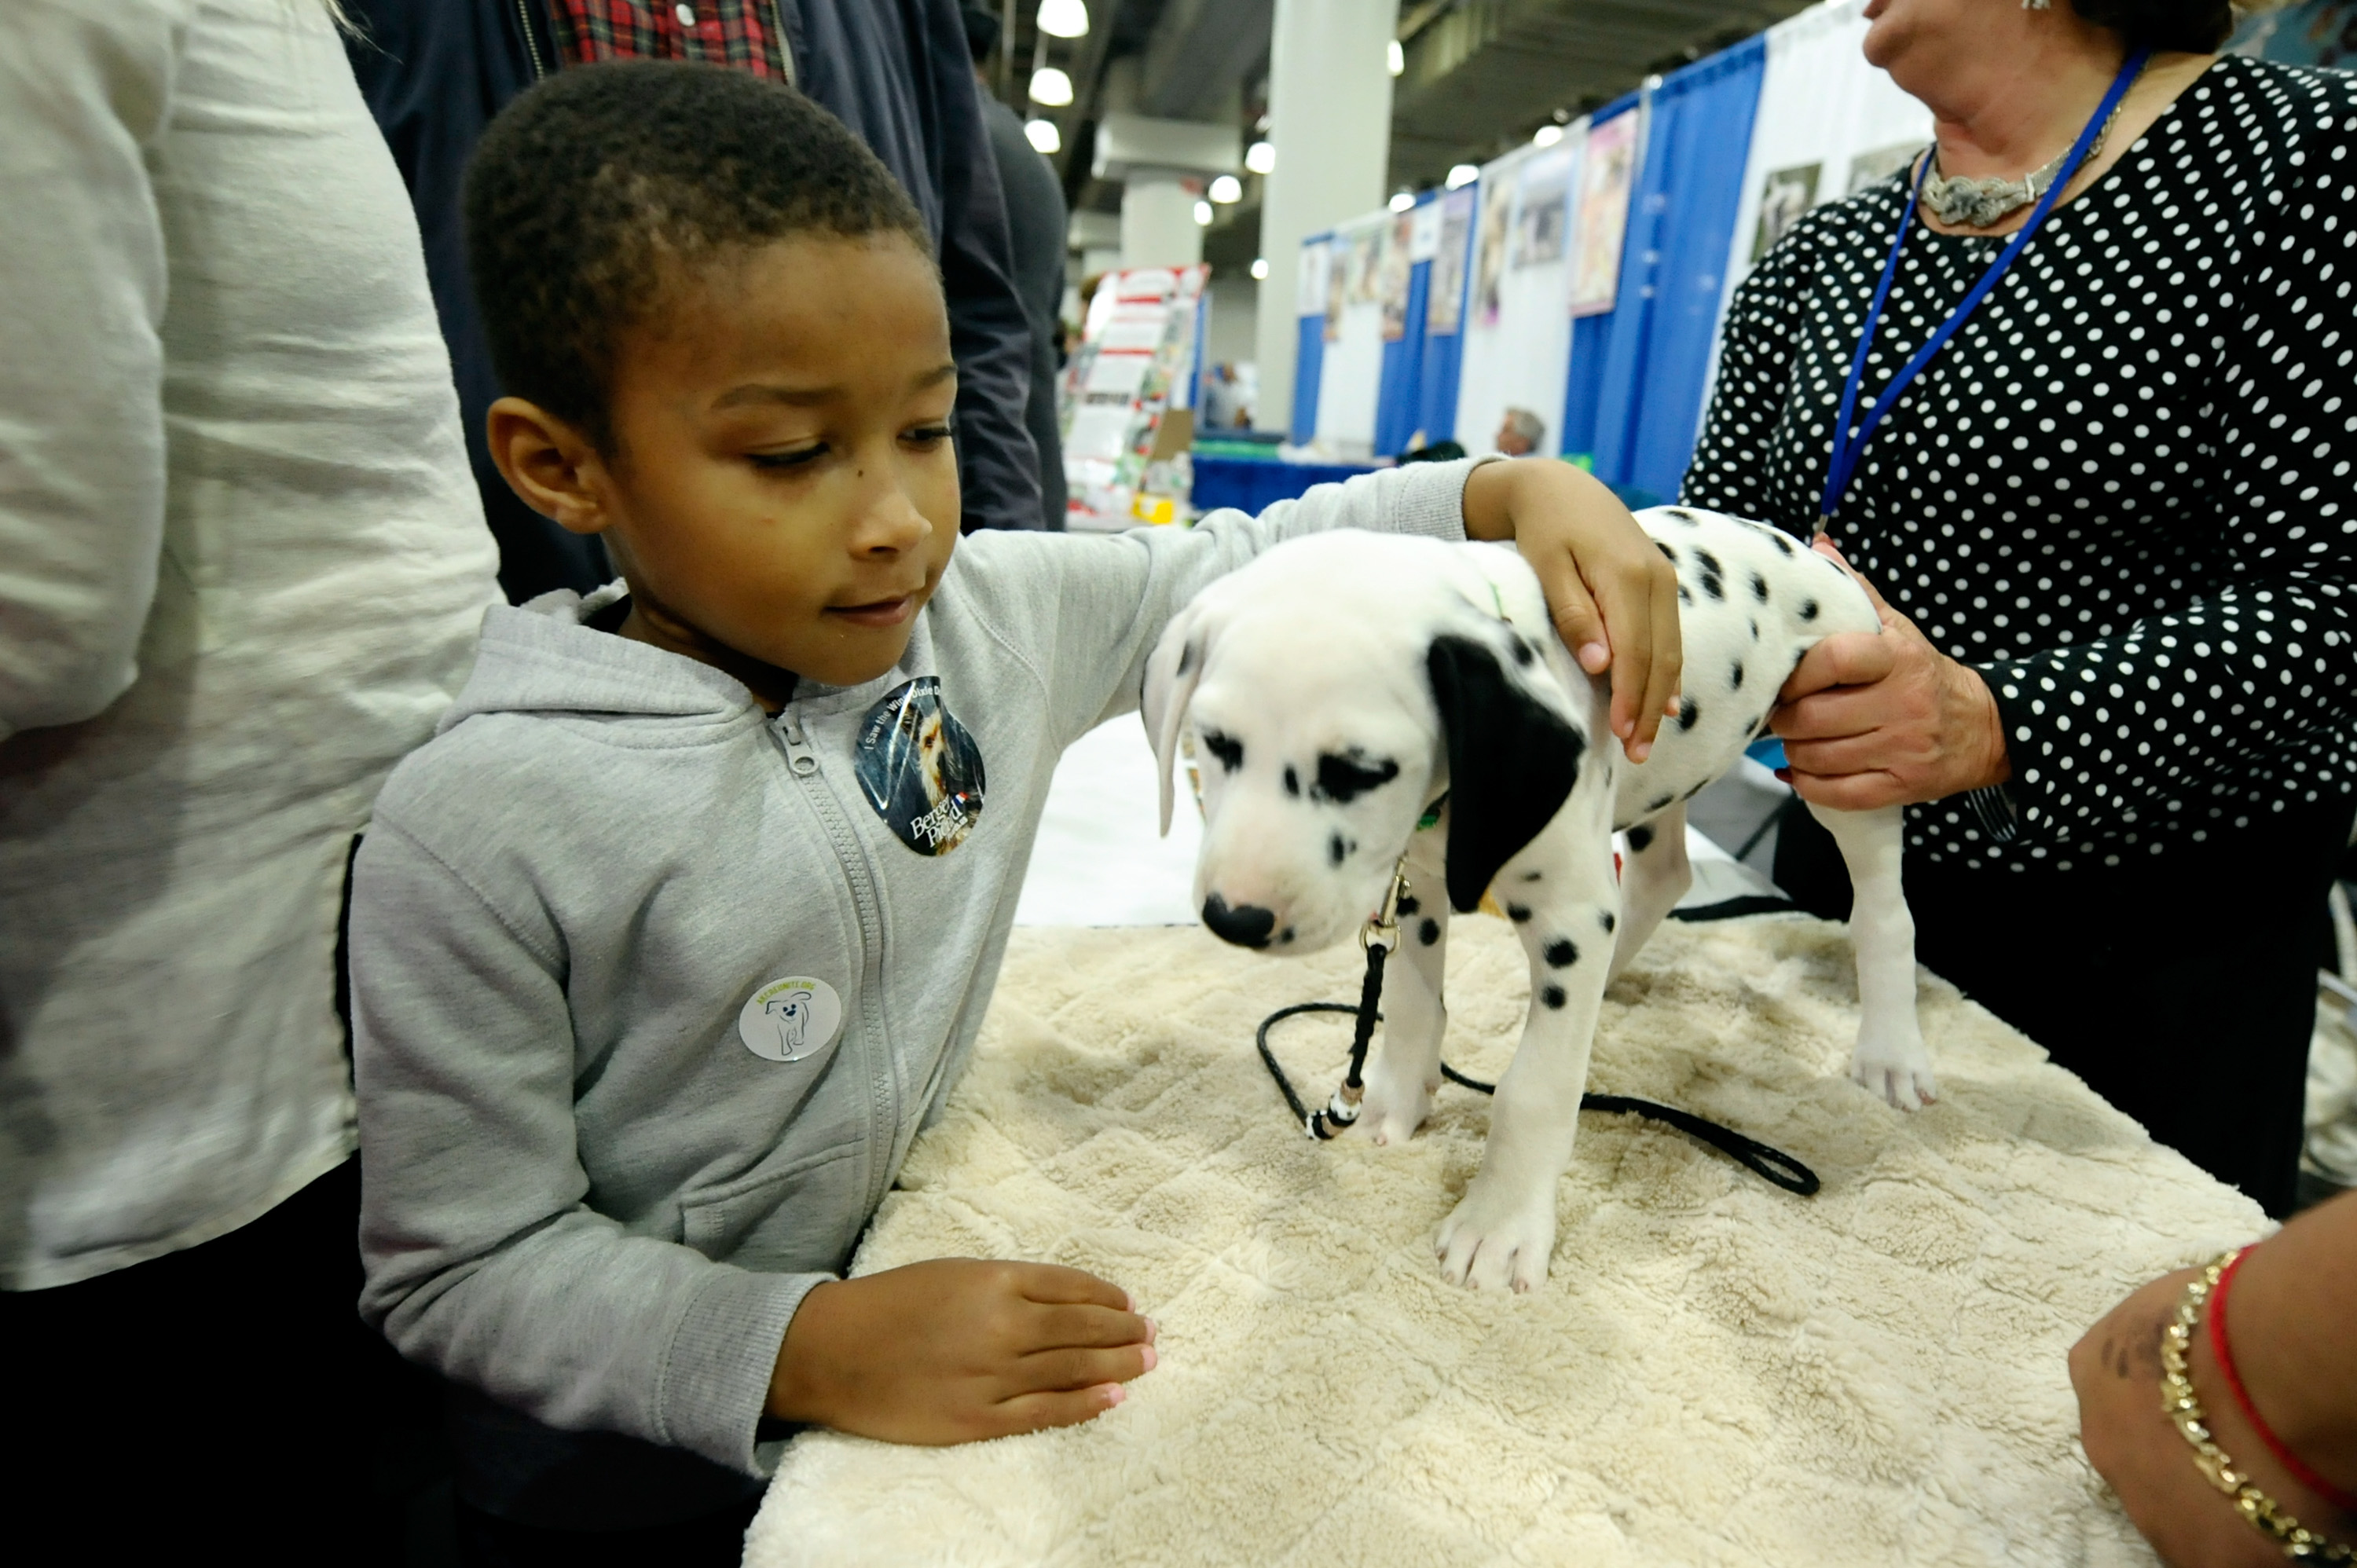 """NEW YORK, NY - SEPTEMBER 28: A view of atmosphere at Day 1 of AKC """"Meet The Breeds"""" showcase at Jacob Javits Center on September 28, 2013 in New York City. (Photo by Ilya S. Savenok/Getty Images for American Kennel Club)"""